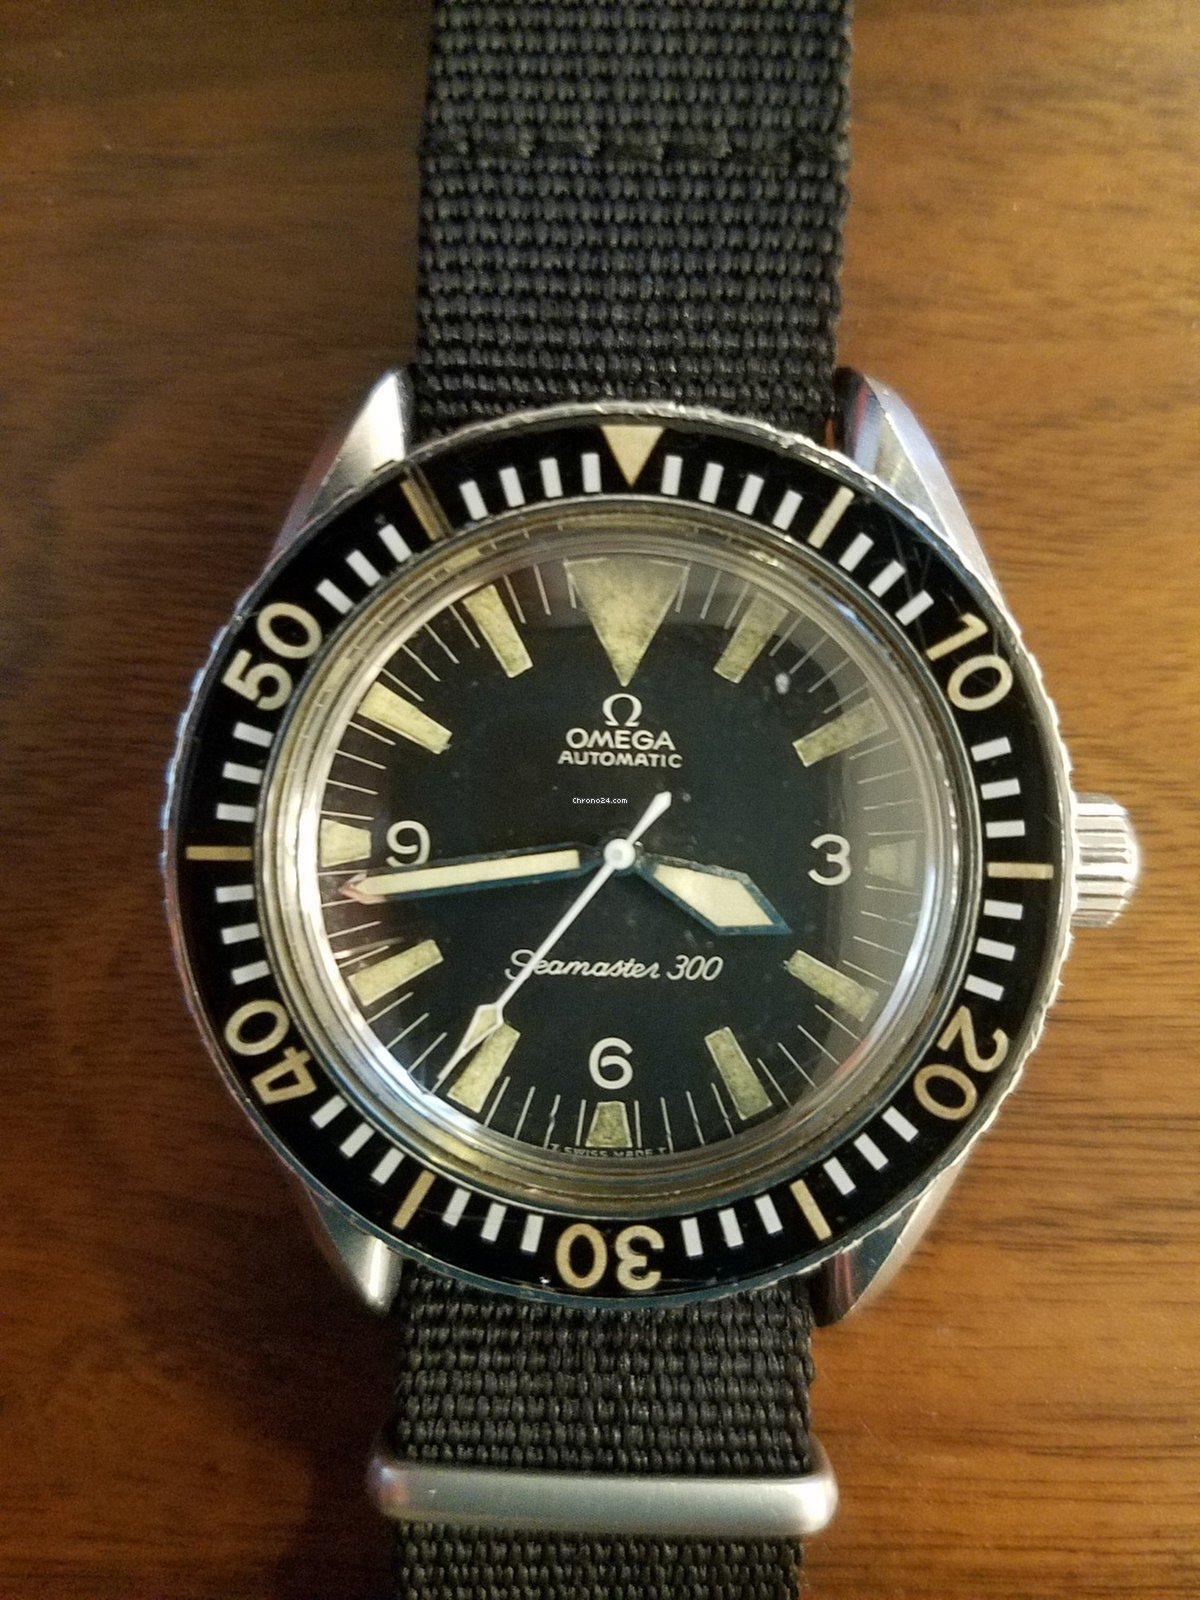 Omega Seamaster 300 Vintage Big Triangle for $8,750 for sale